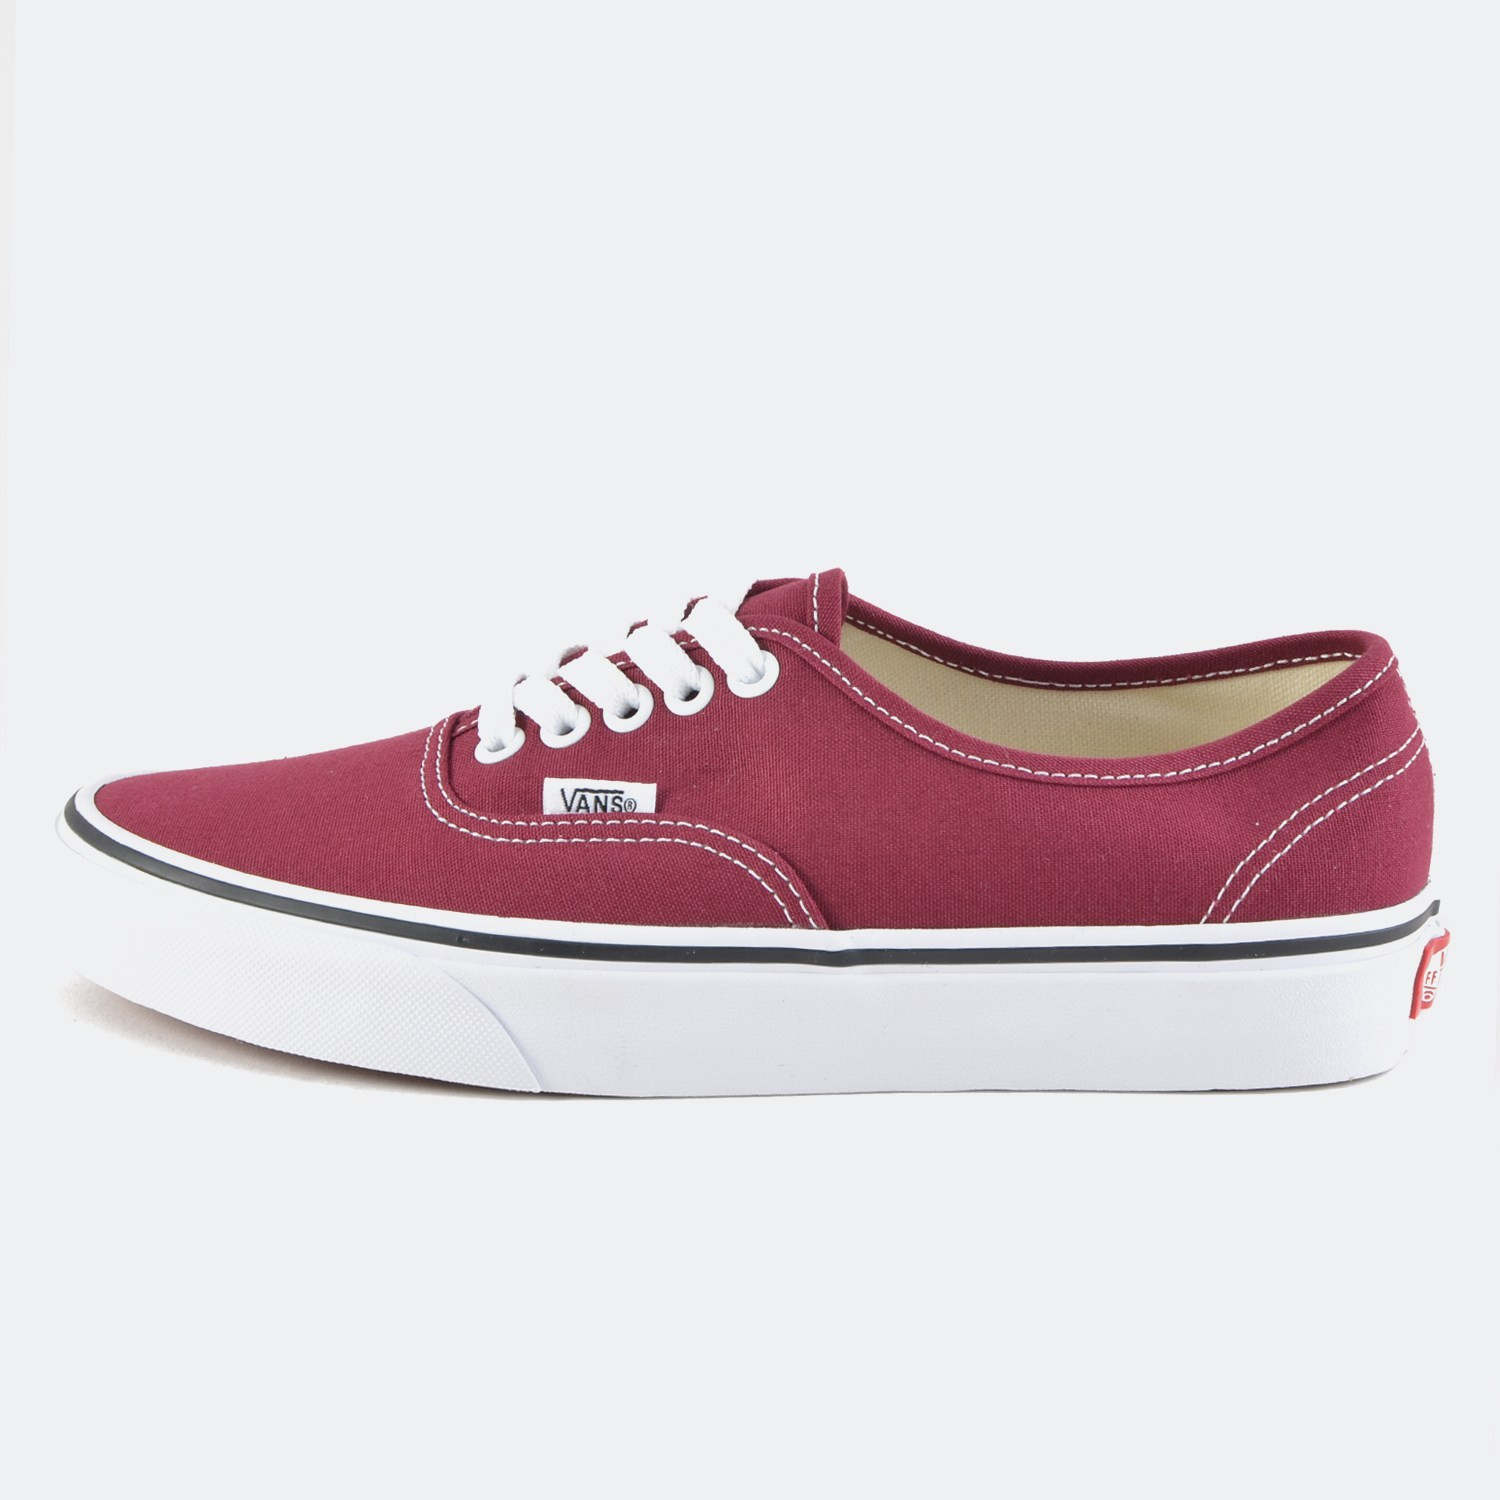 Vans Authentic Shoes (9000038972_41498)